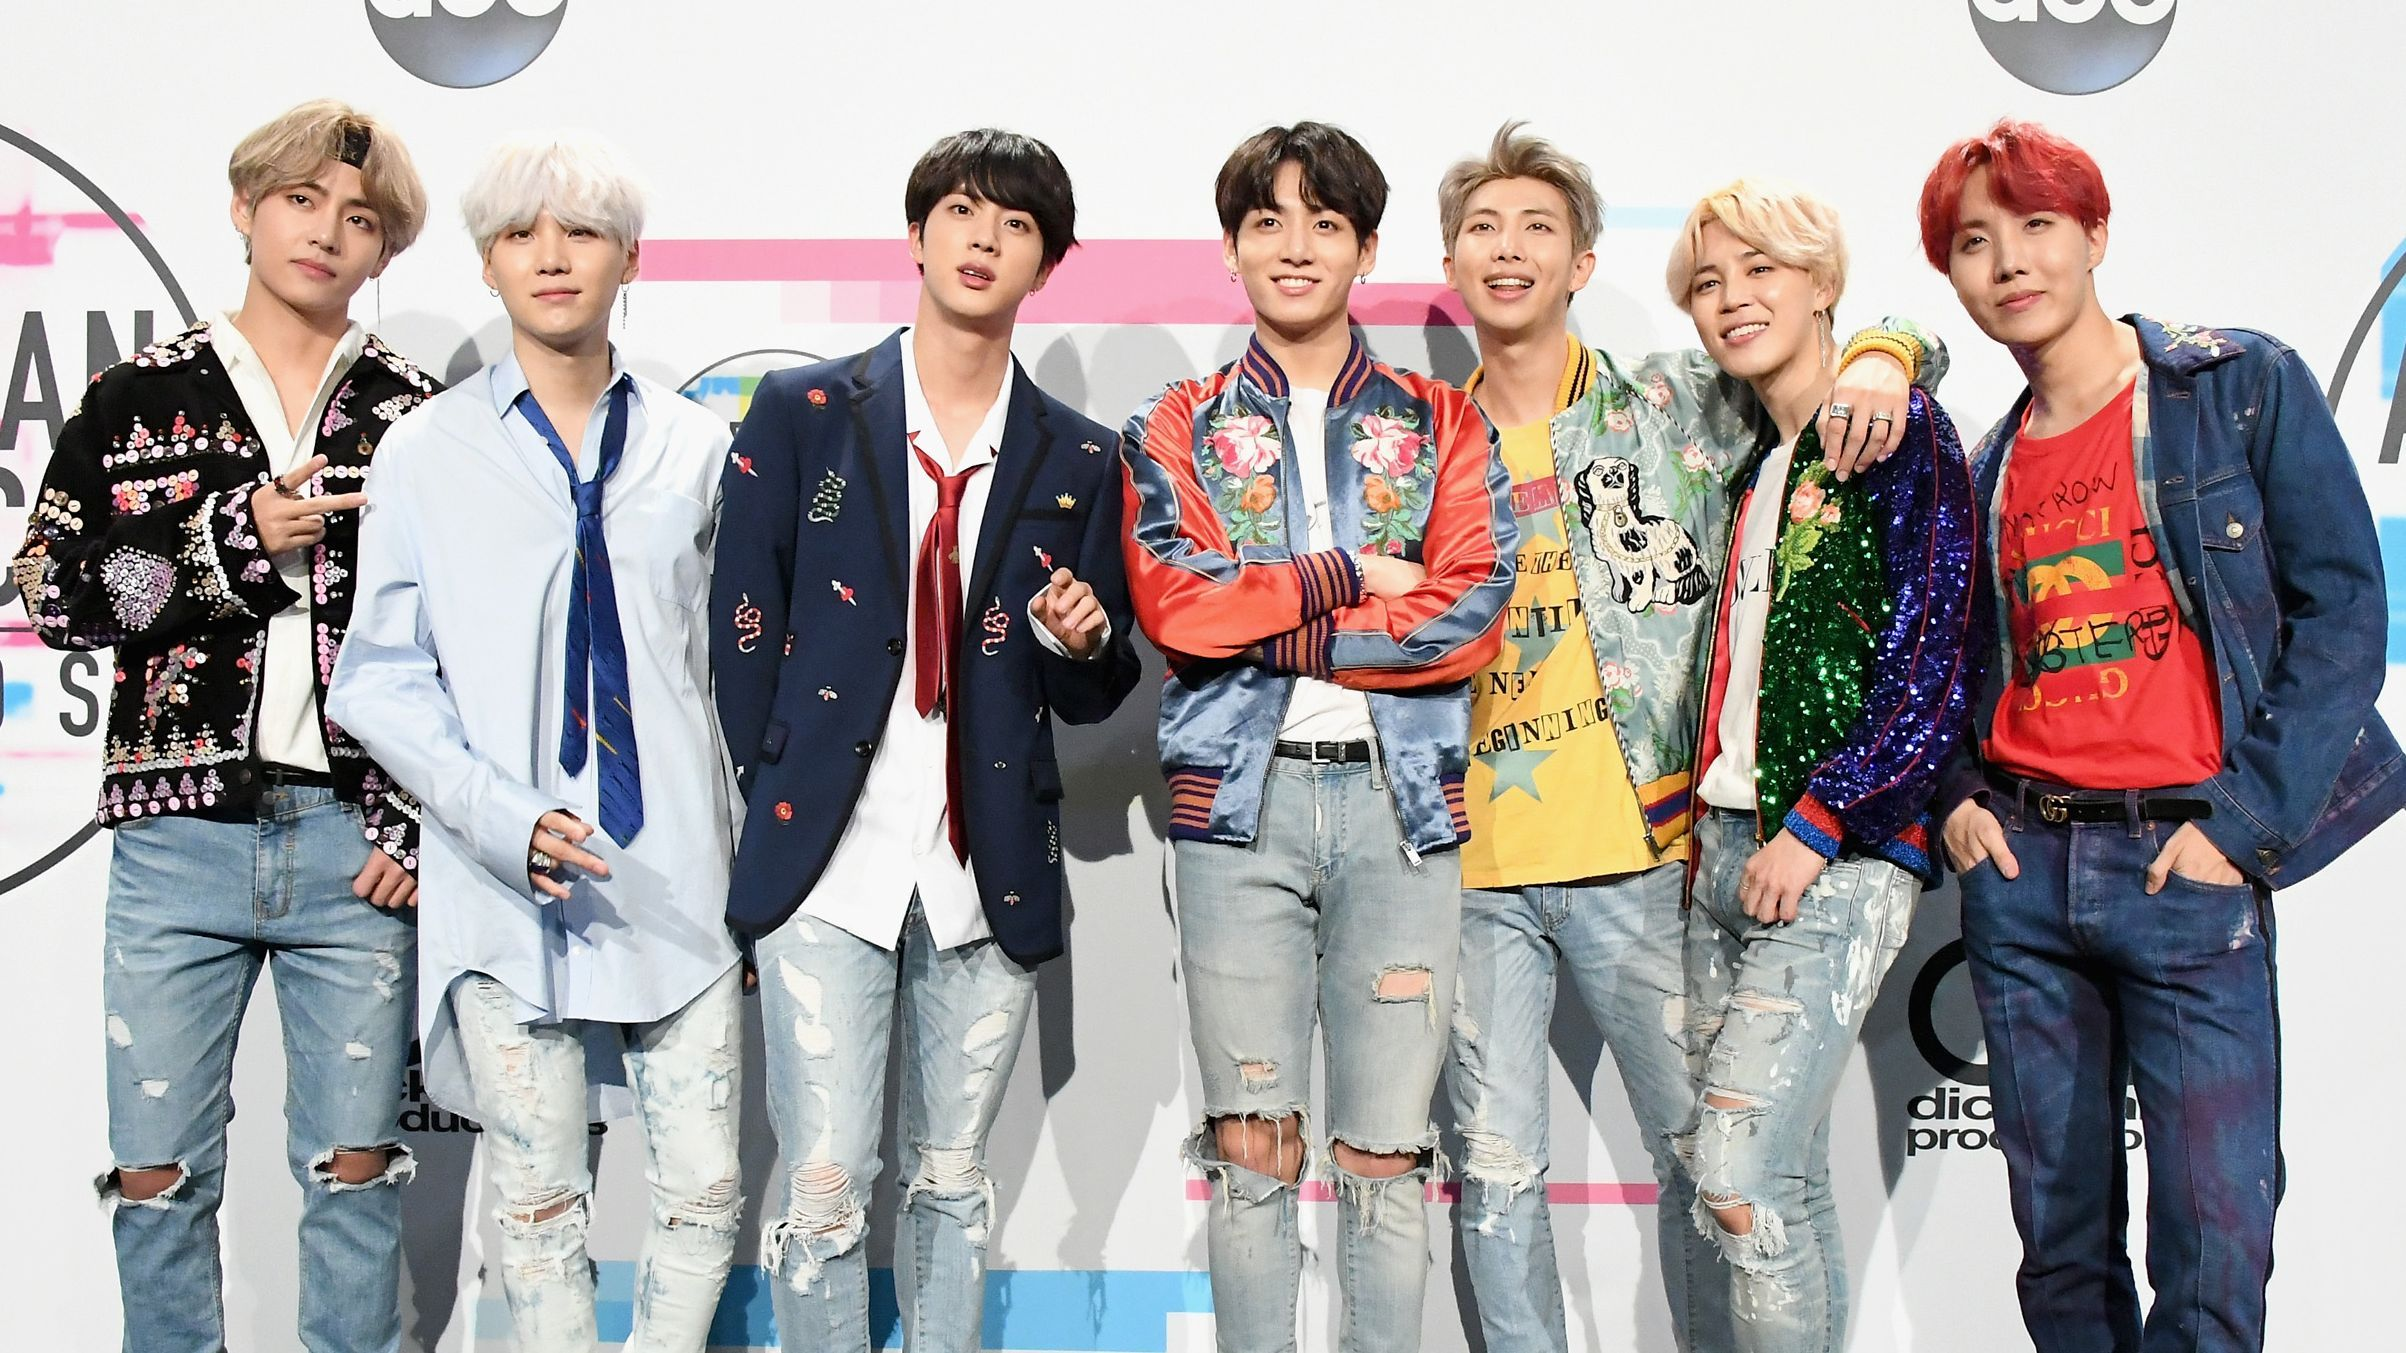 The Astrological Signs As BTS Songs Because Loving Yourself